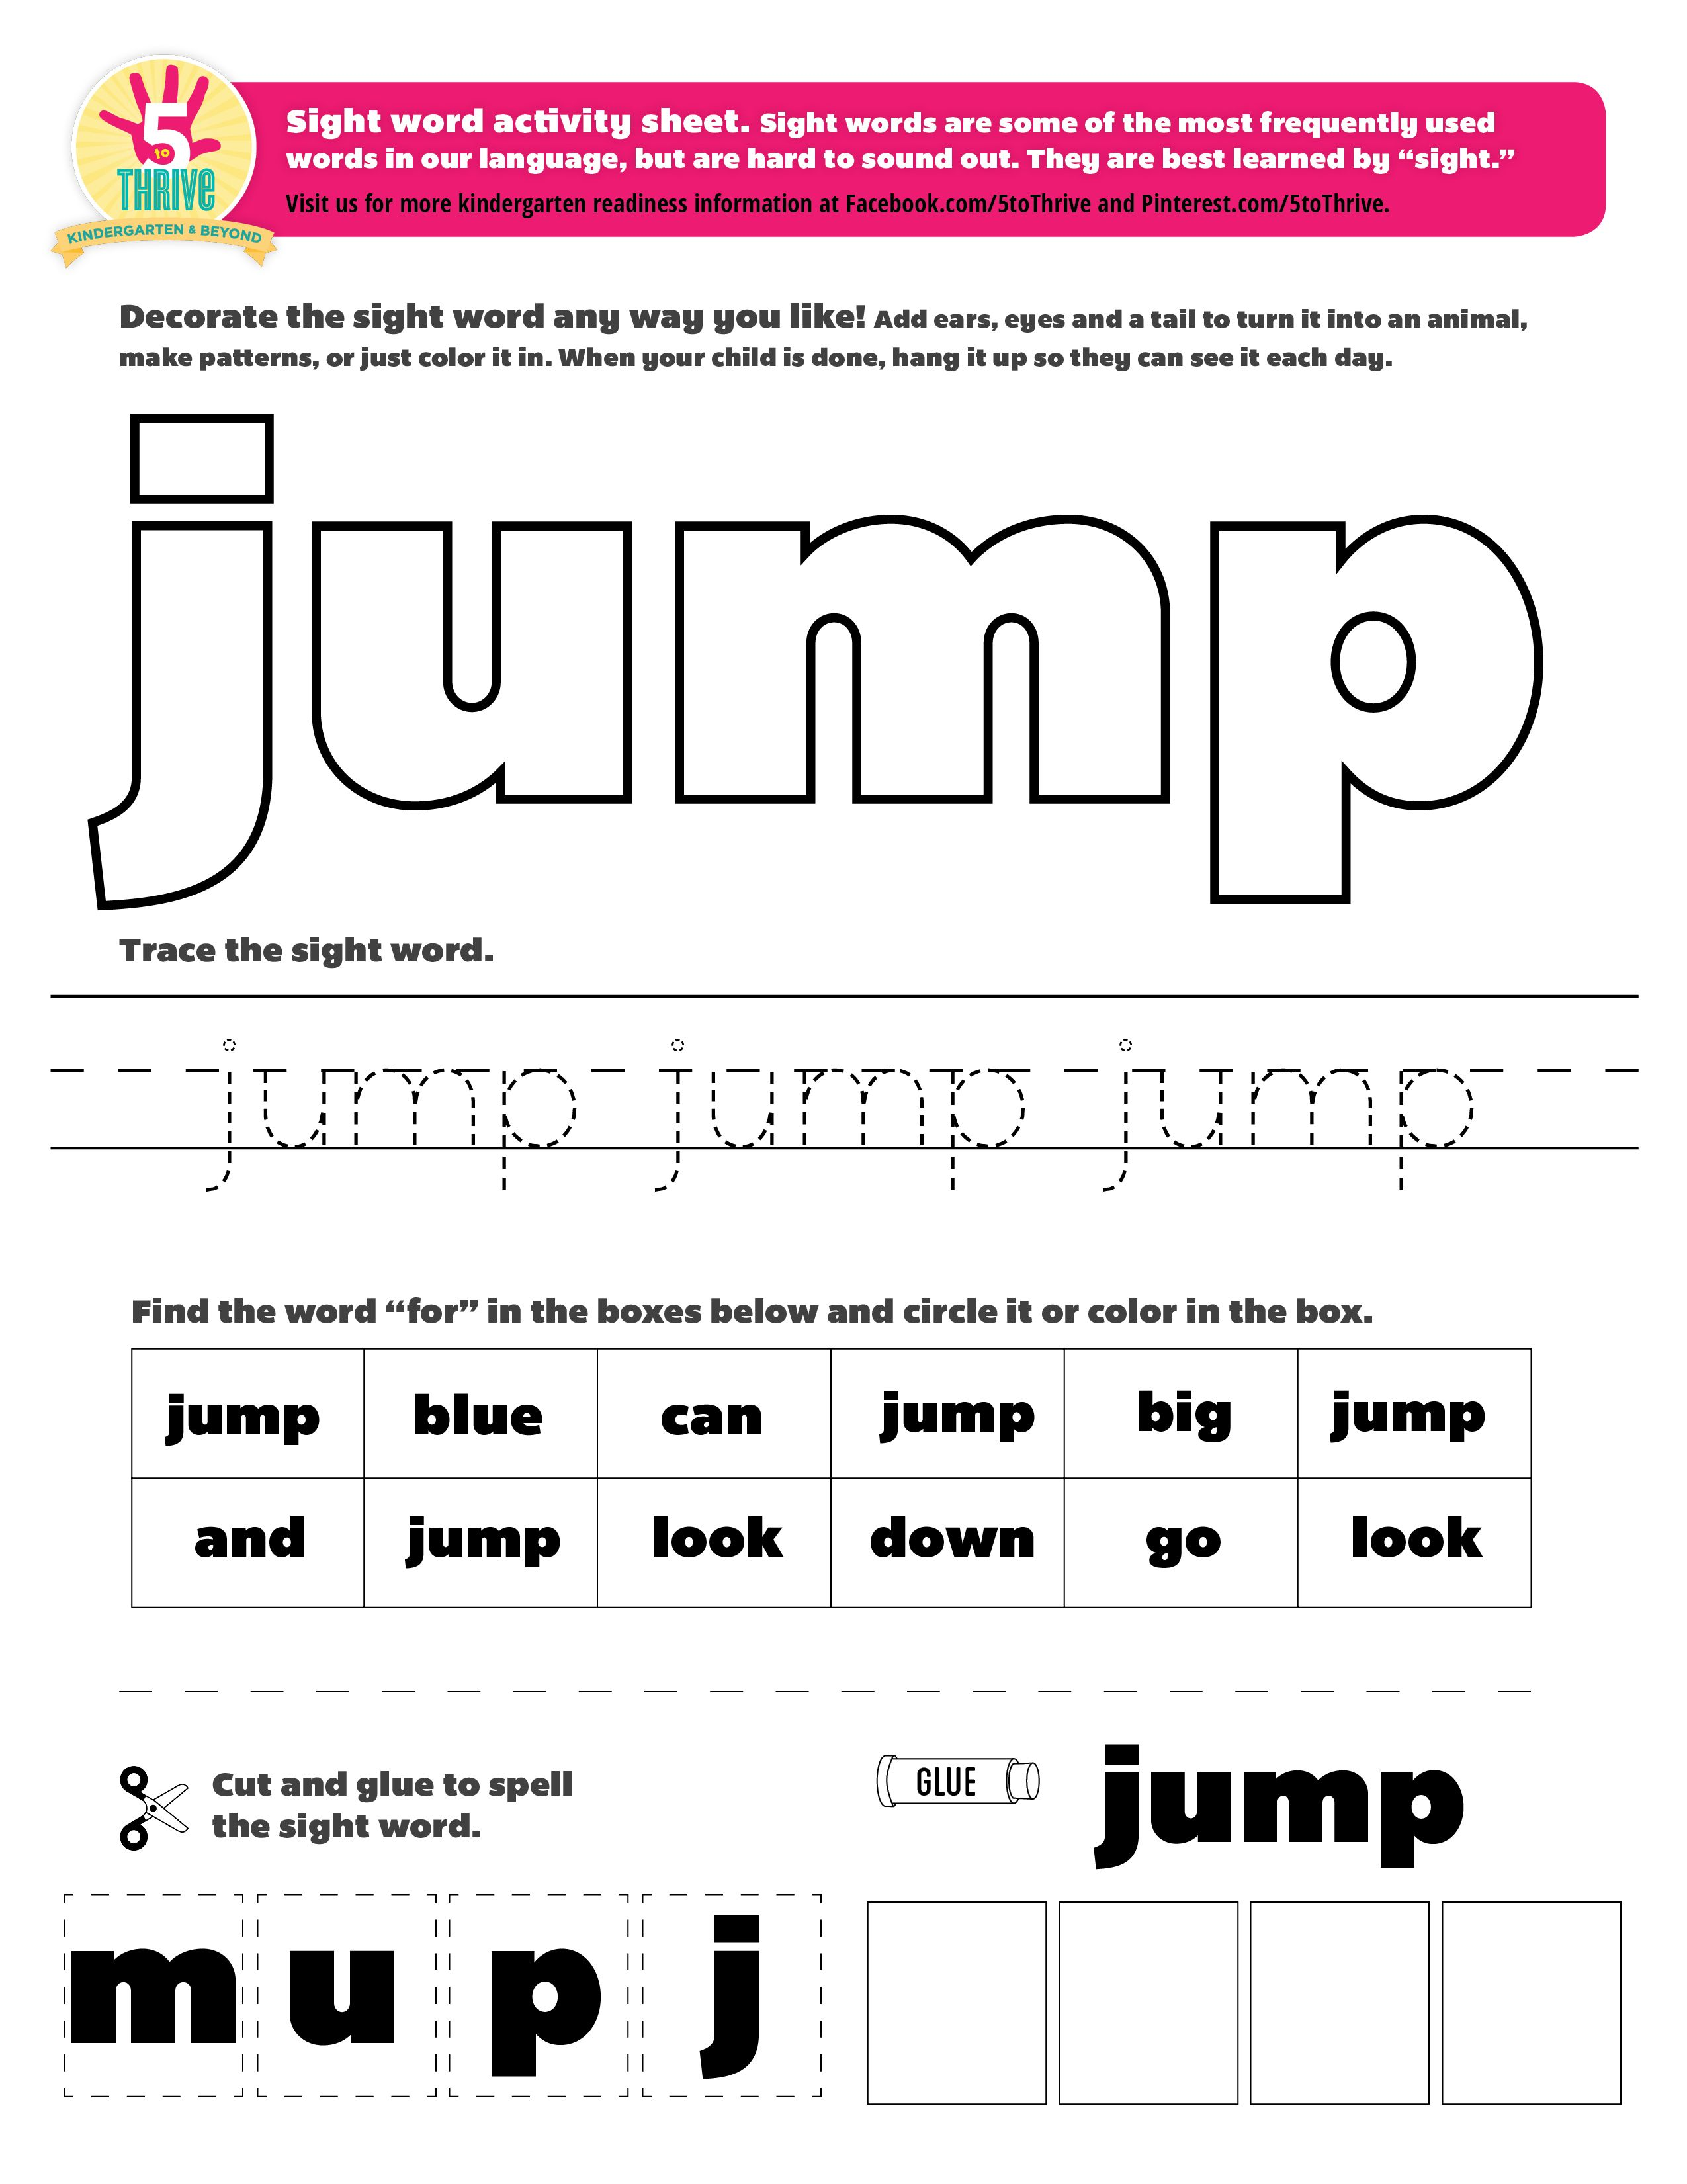 The Sight Word This Week Is Jump Sight Words Are Some Of The Most Frequently Used Words In